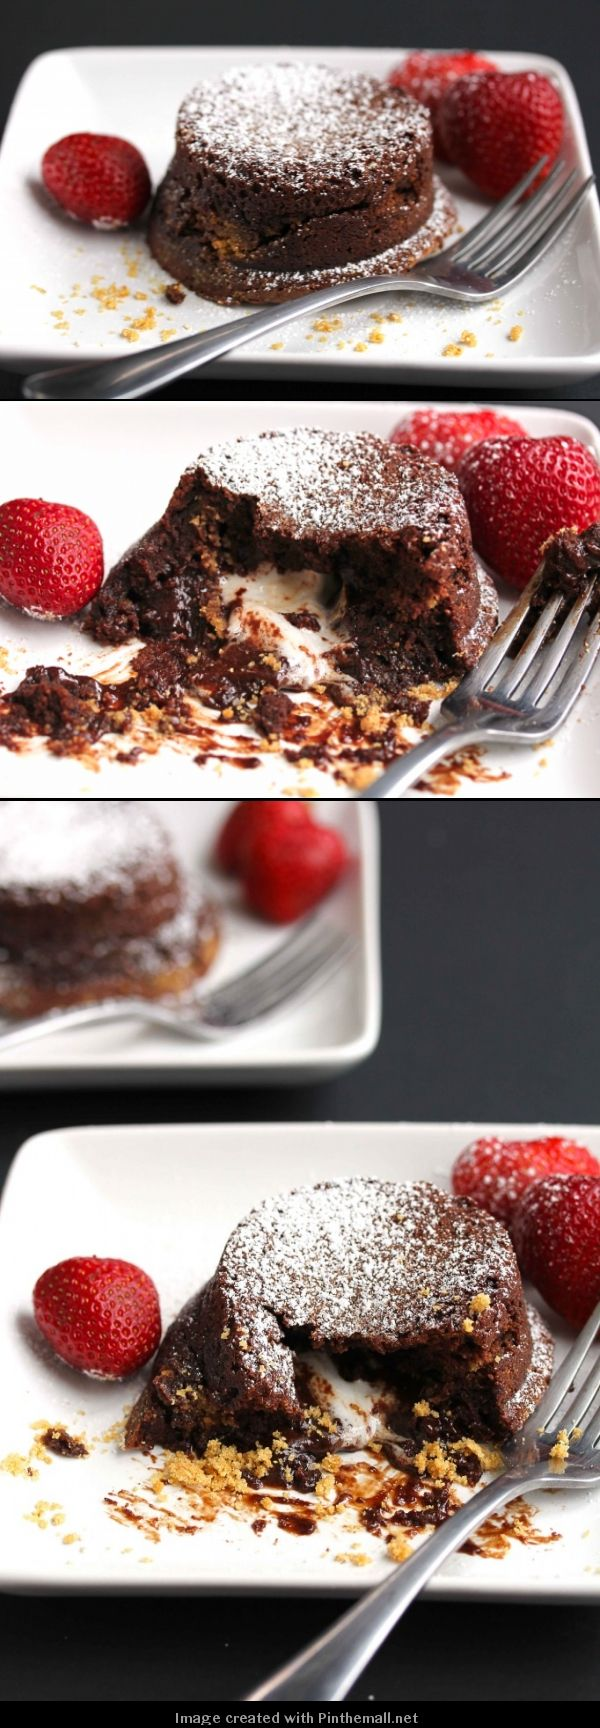 S'more Lava Cake: A Decadent chocolate cake with a surprise of oozing toasted marshmallow and graham crackers